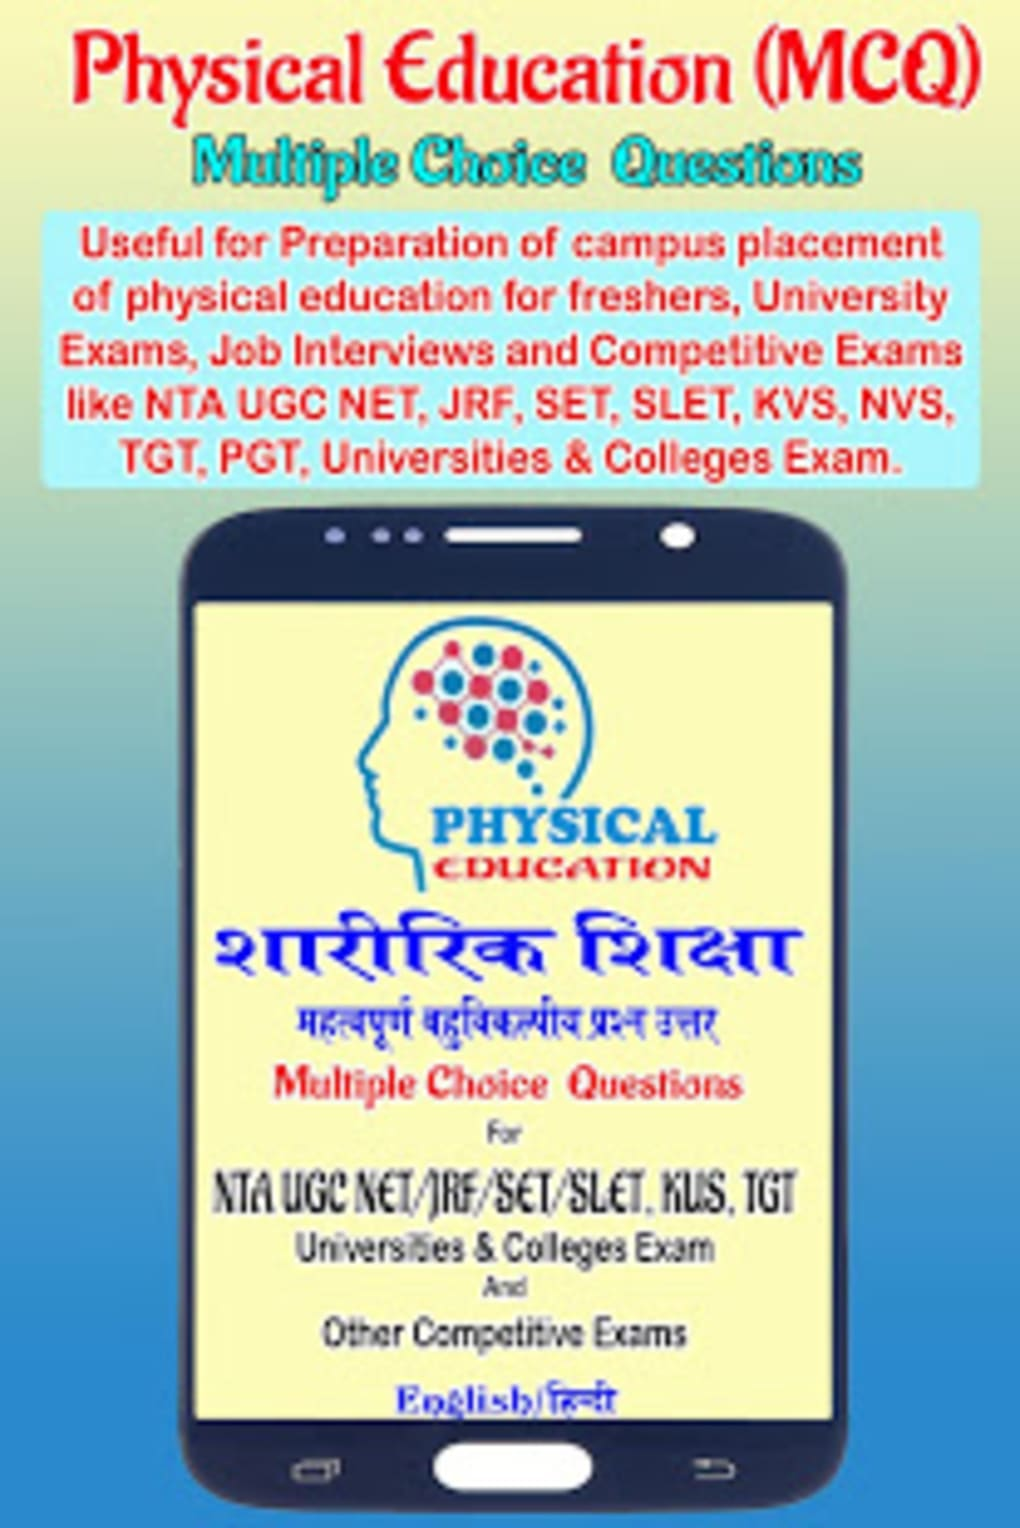 Physical Education MCQ for Android - Download